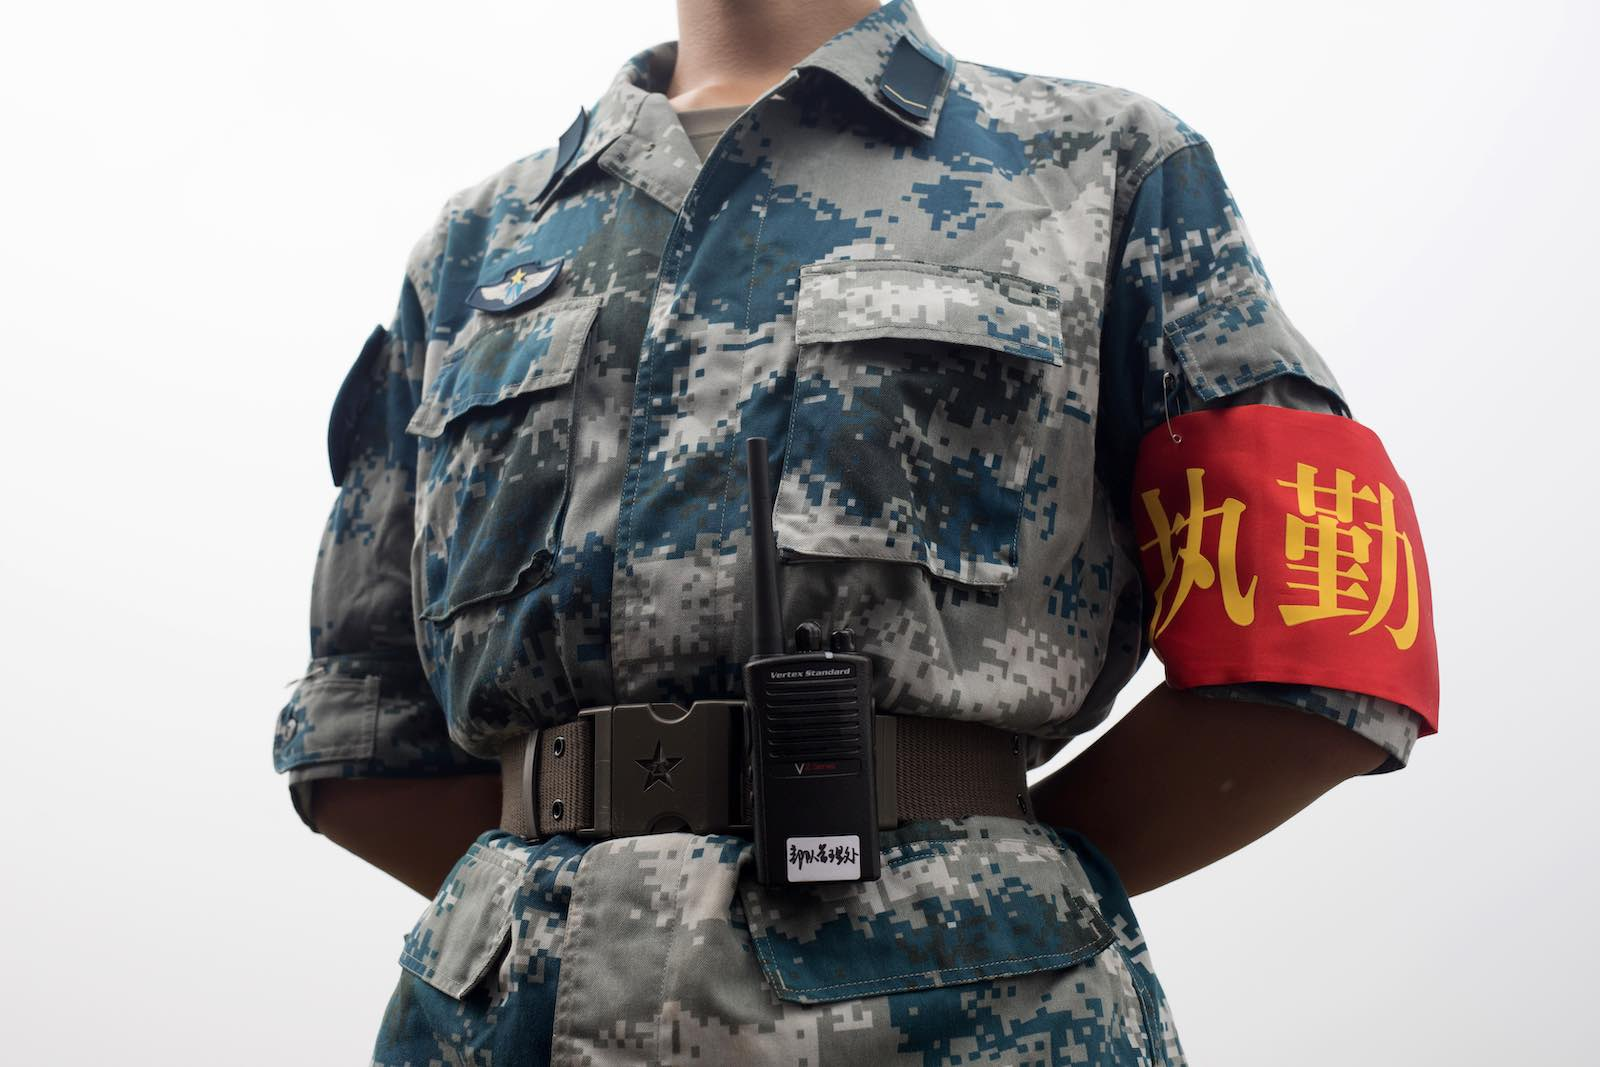 China is seeking to make its military leaner and meaner with technological advancements (Photo: Paul Yeung via Getty)